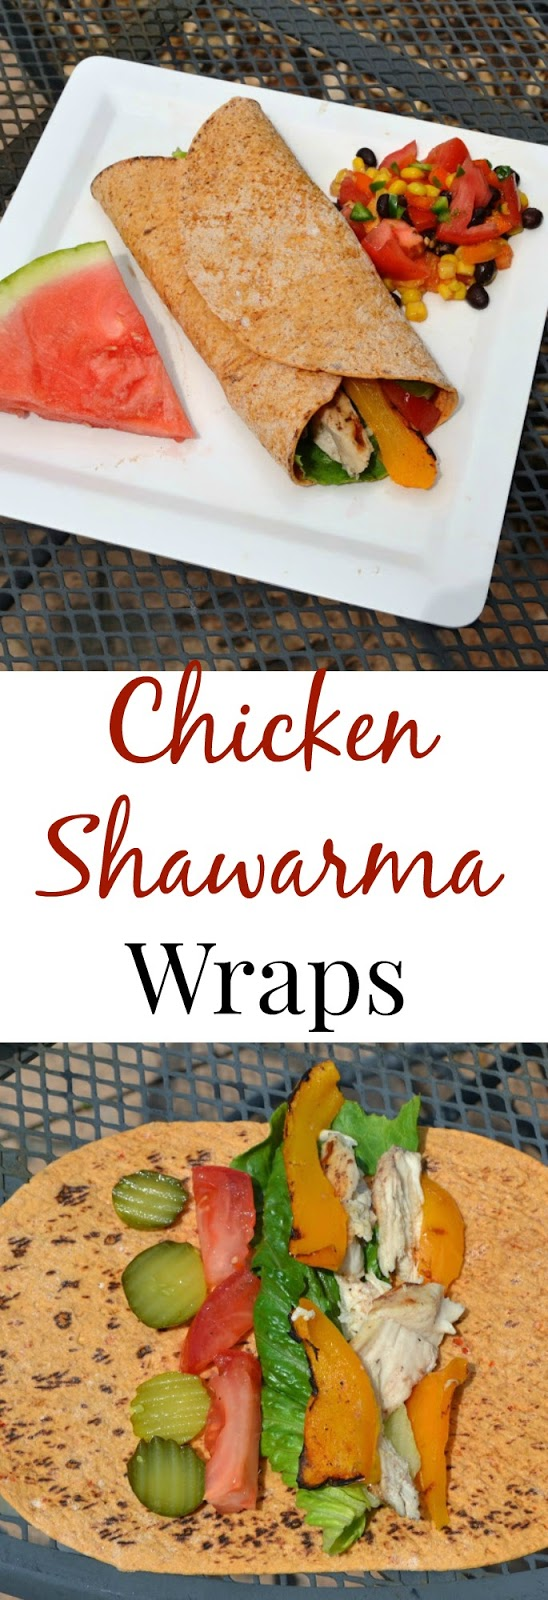 These Chicken Shawarma Wraps are healthier than what you find at your local restaurant but still are packed with delicious flavor! www.nutritionistreviews.com